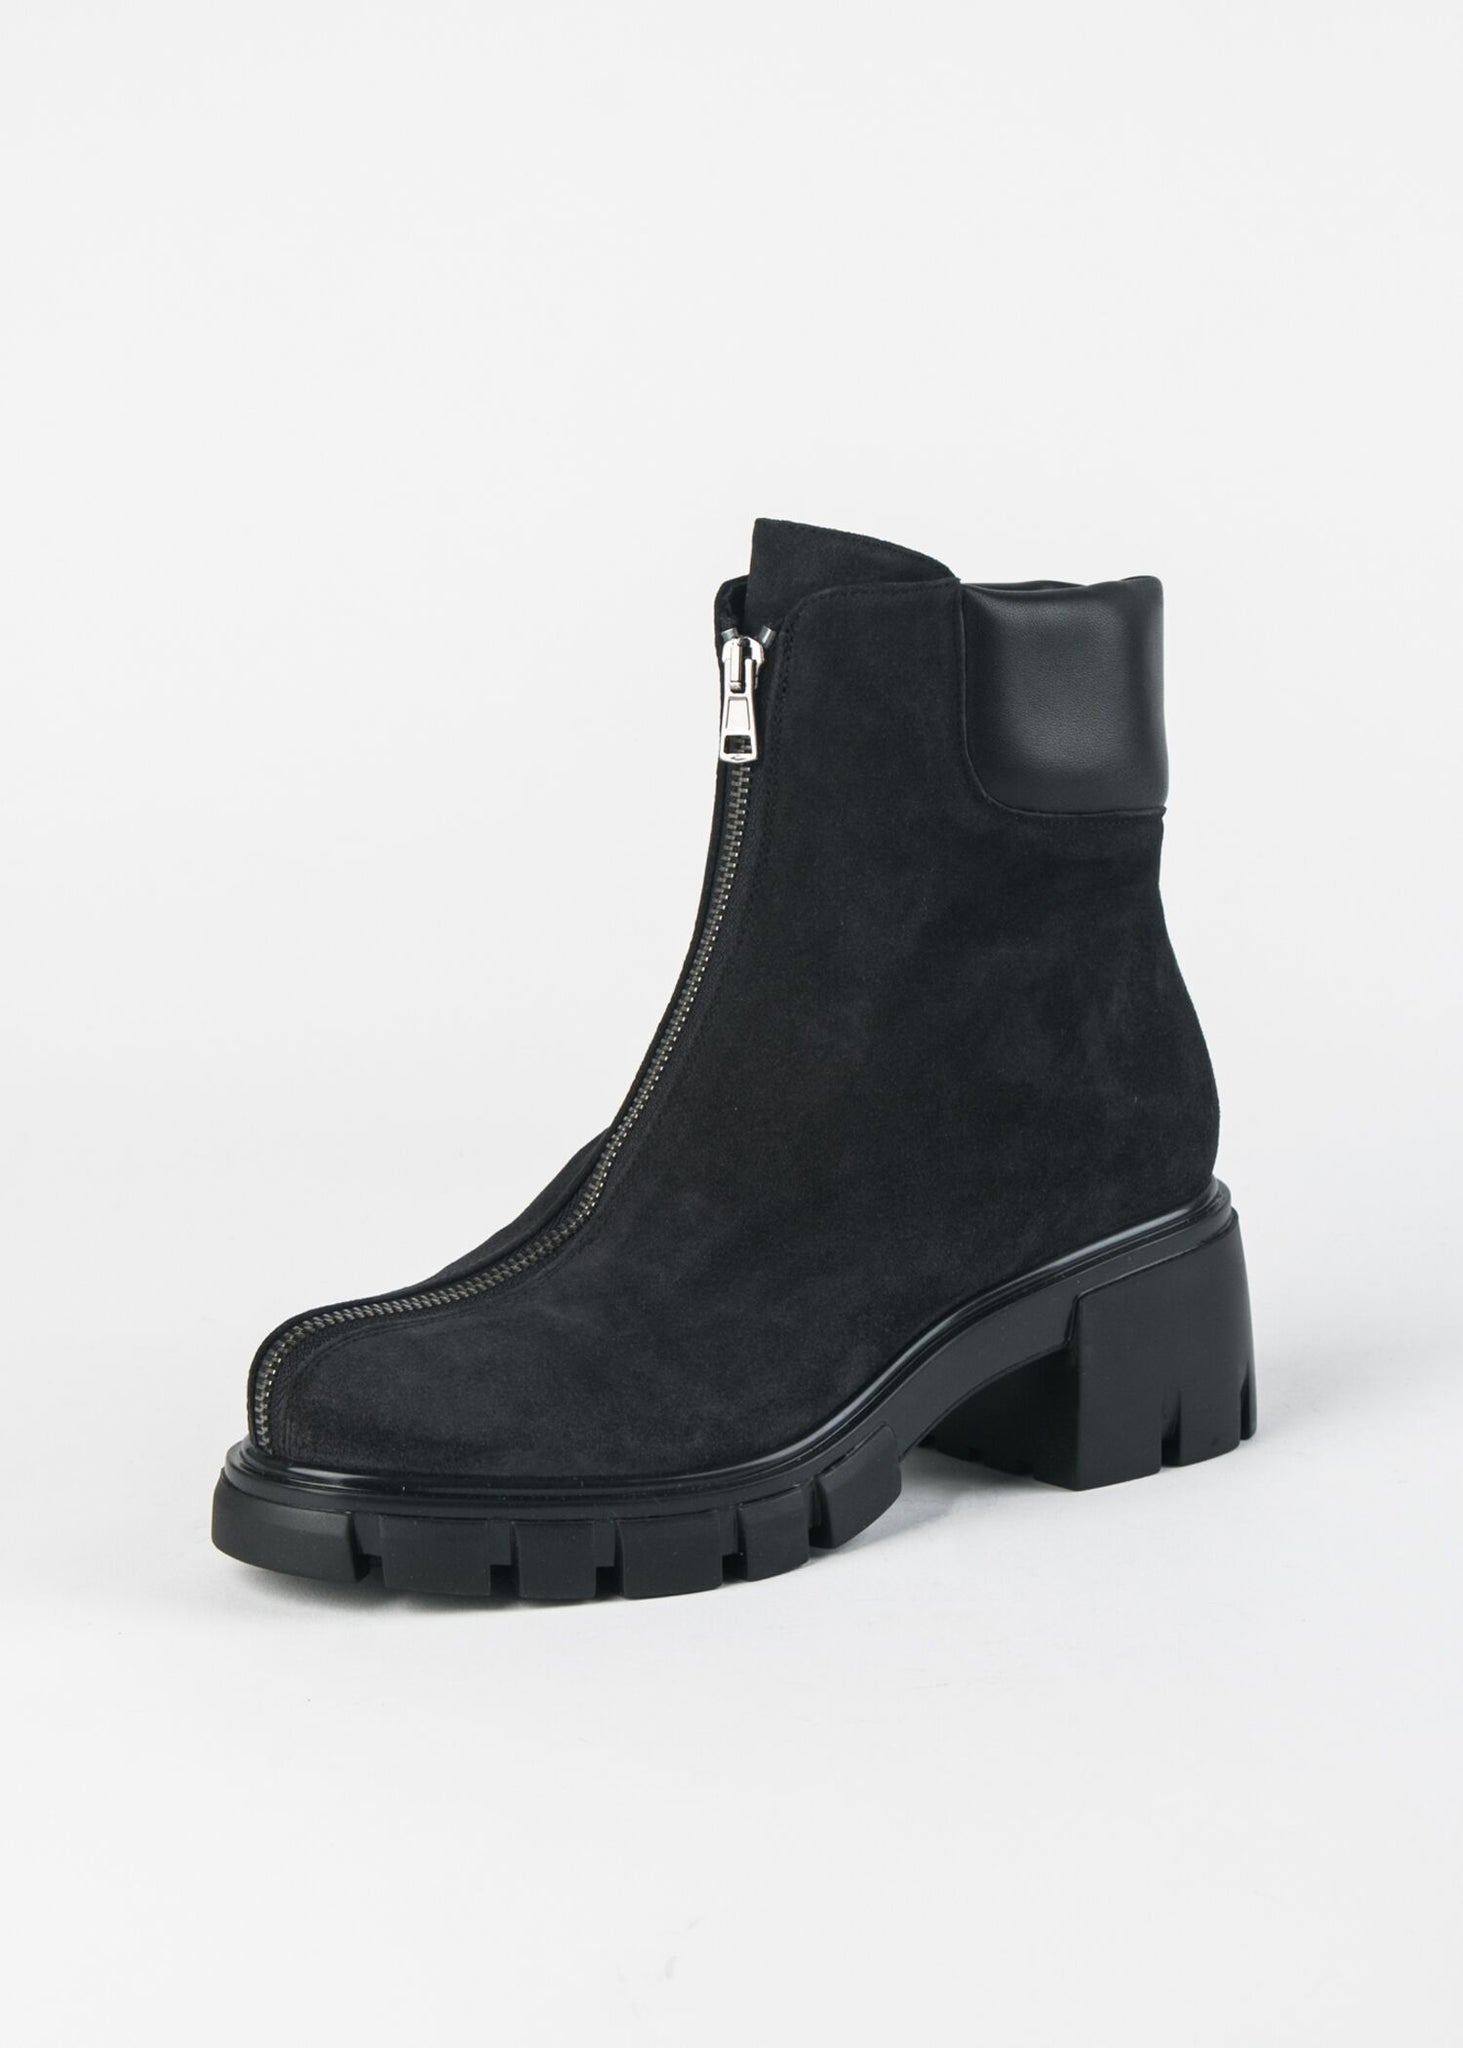 CENTER ZIPPER BOOT ON LUG SOLE